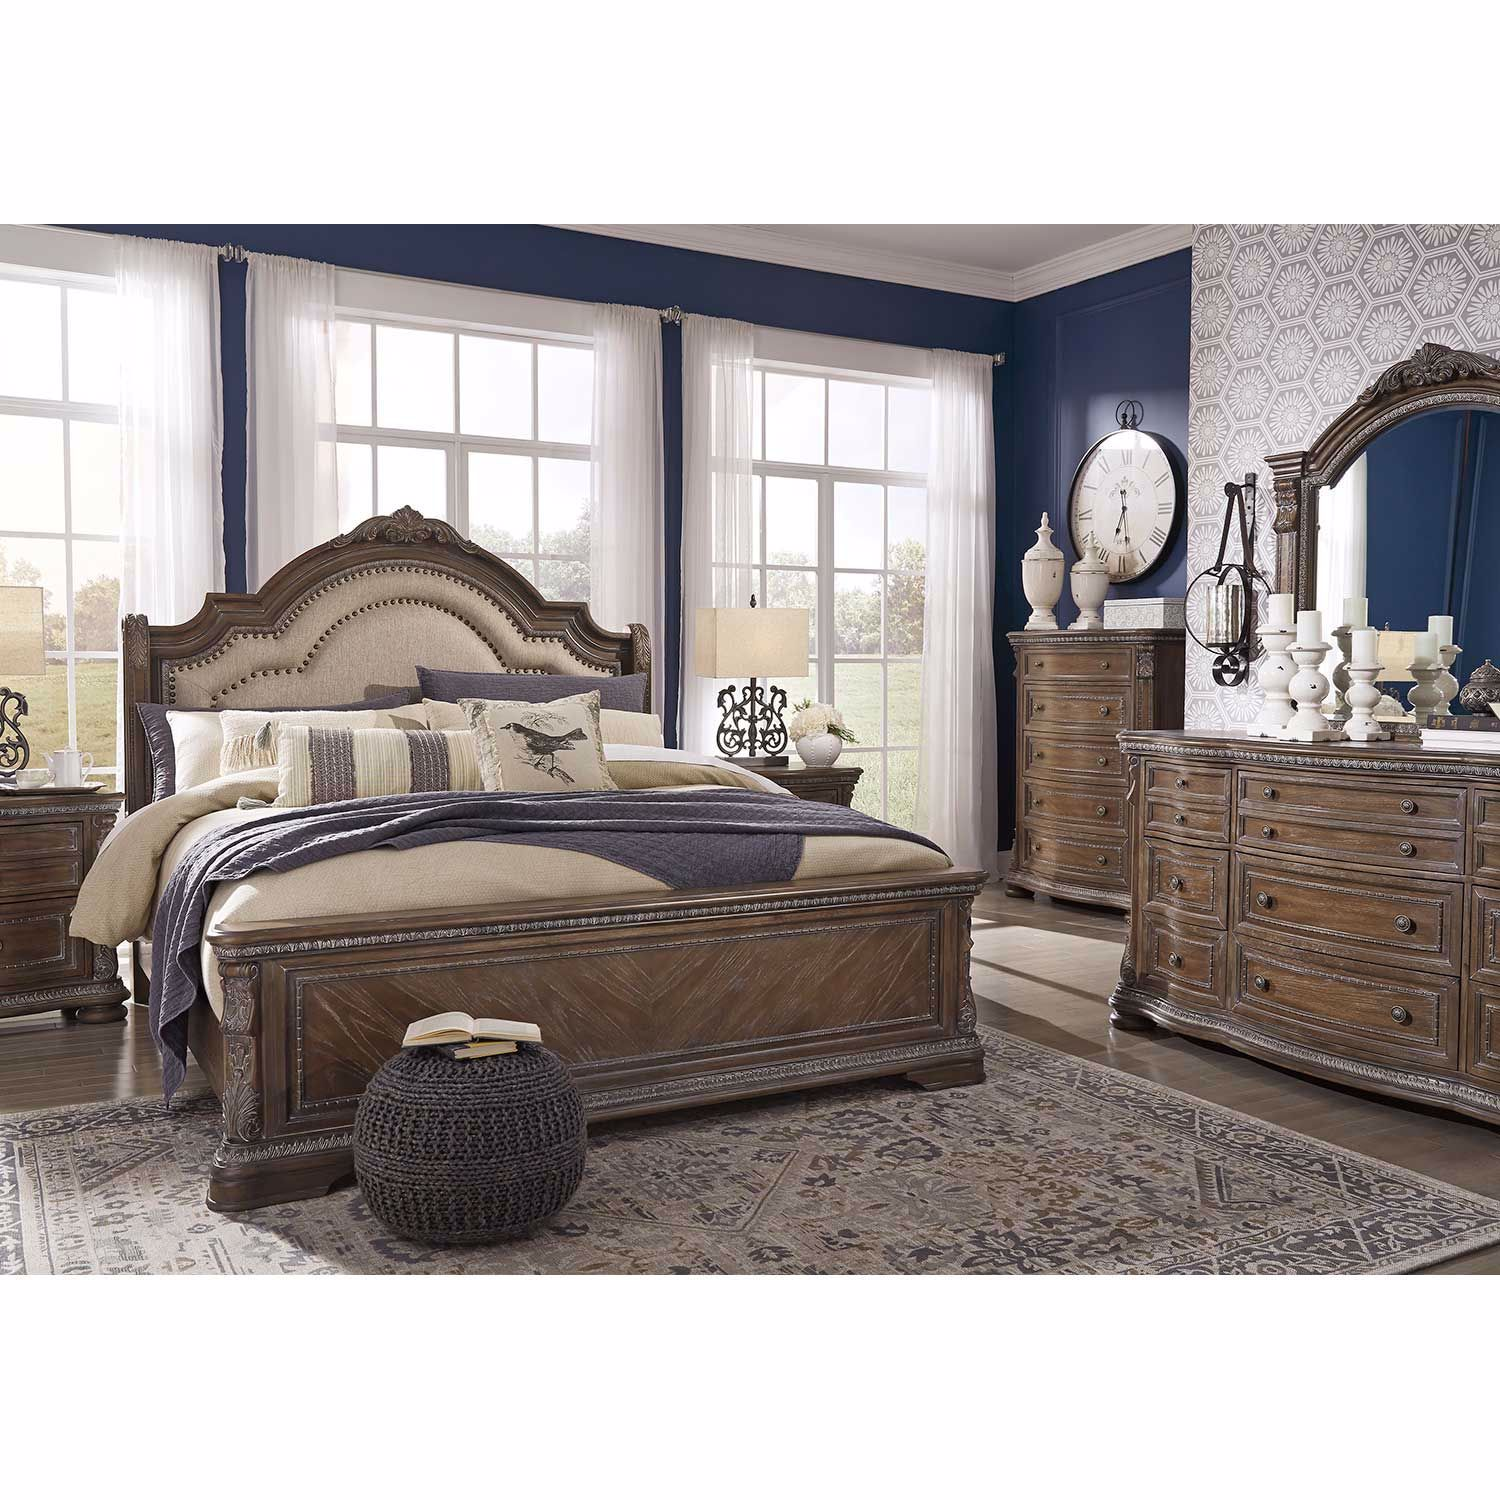 Picture of Charmond Upholstered King Bed